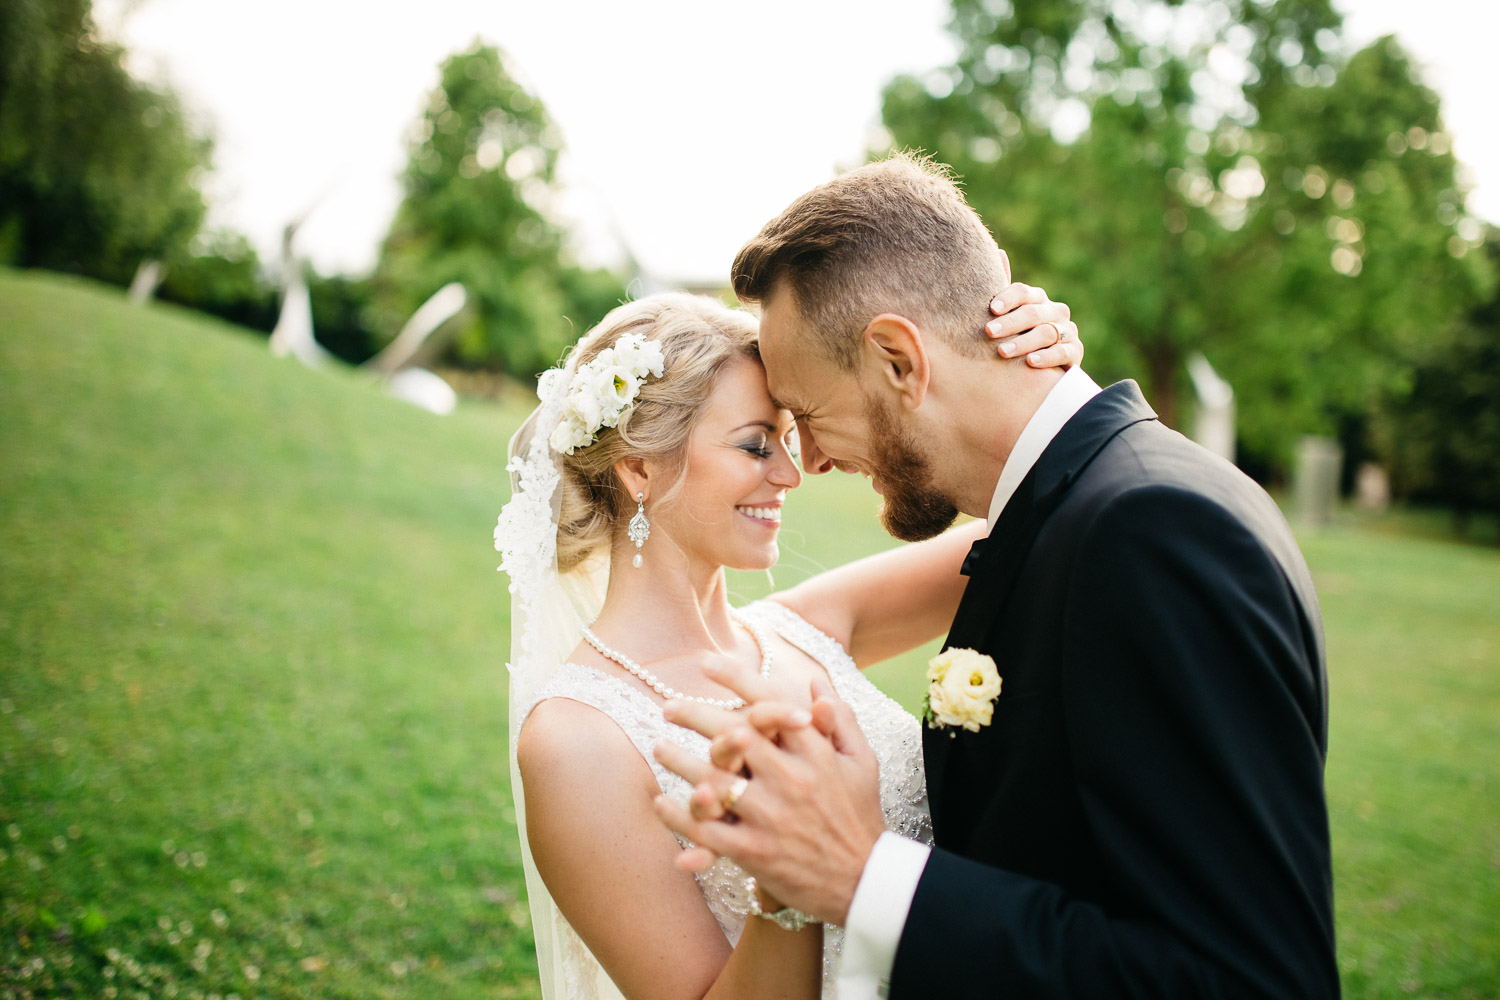 Wedding photographer in Munich - True Love Photography